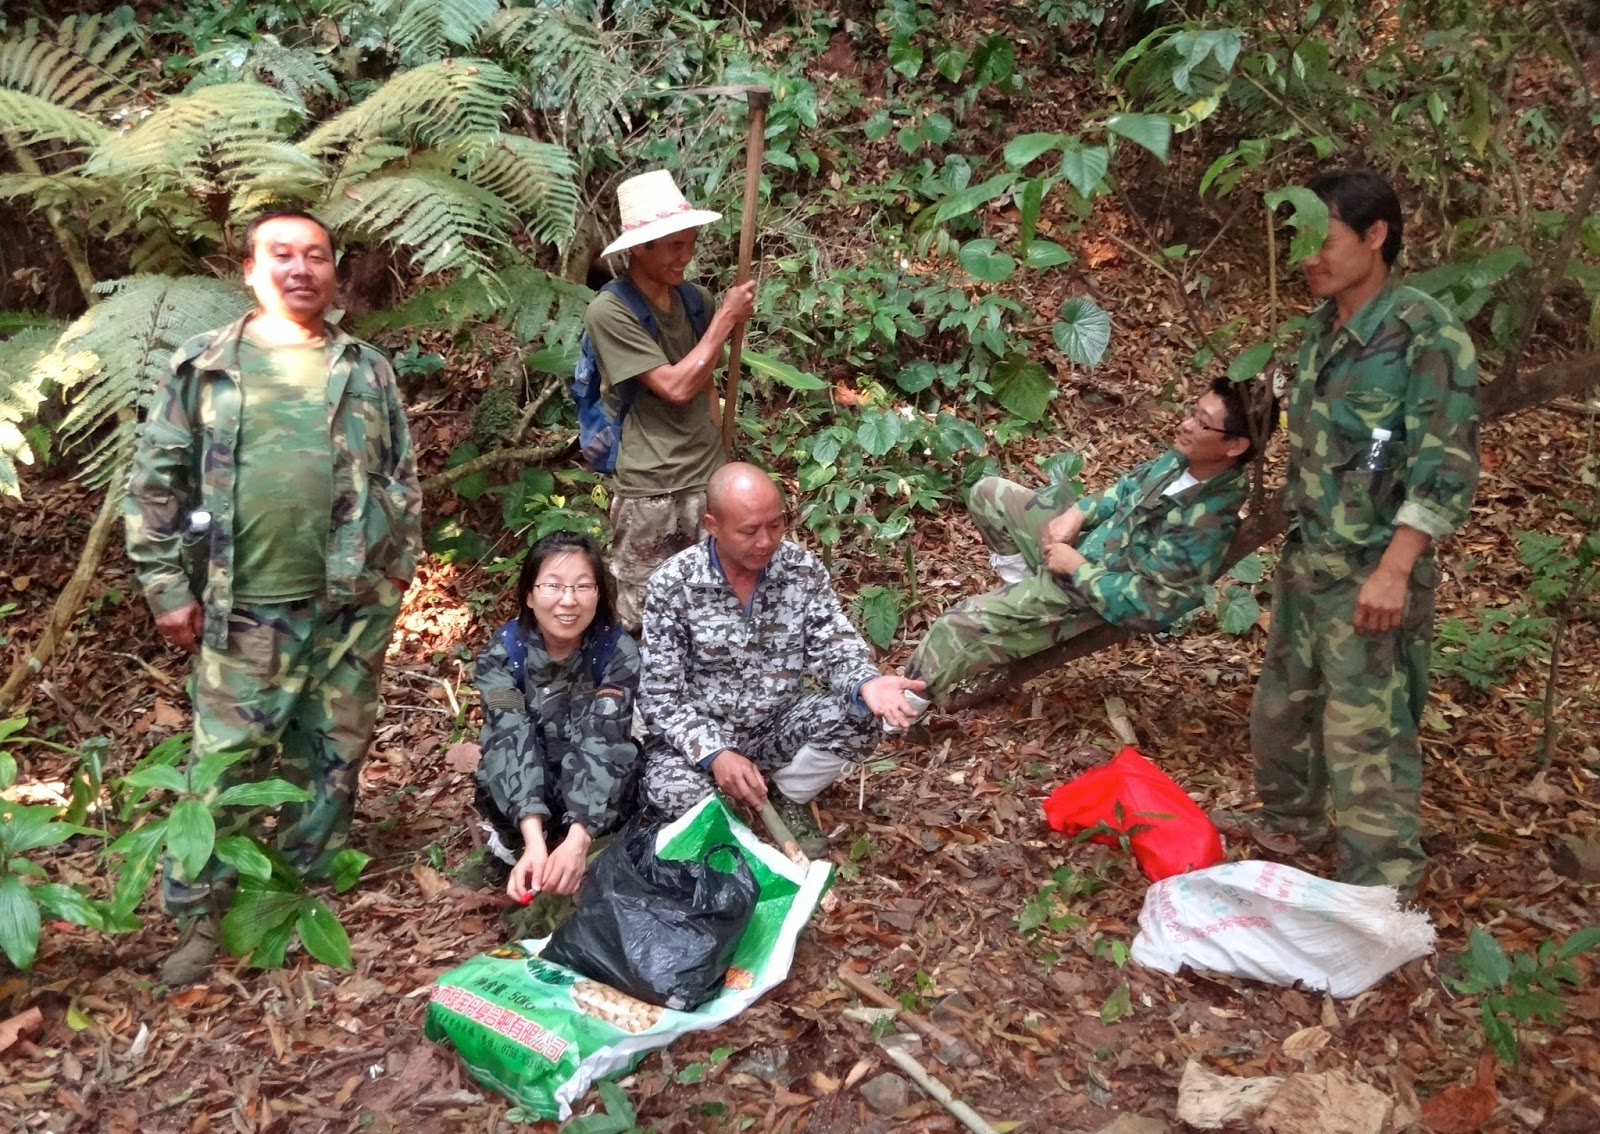 María Natalia Umaña, photo courtesy of maumana.wix.com (left), conducts fieldwork with her team in the Xishuangbanna China forest plot (right).